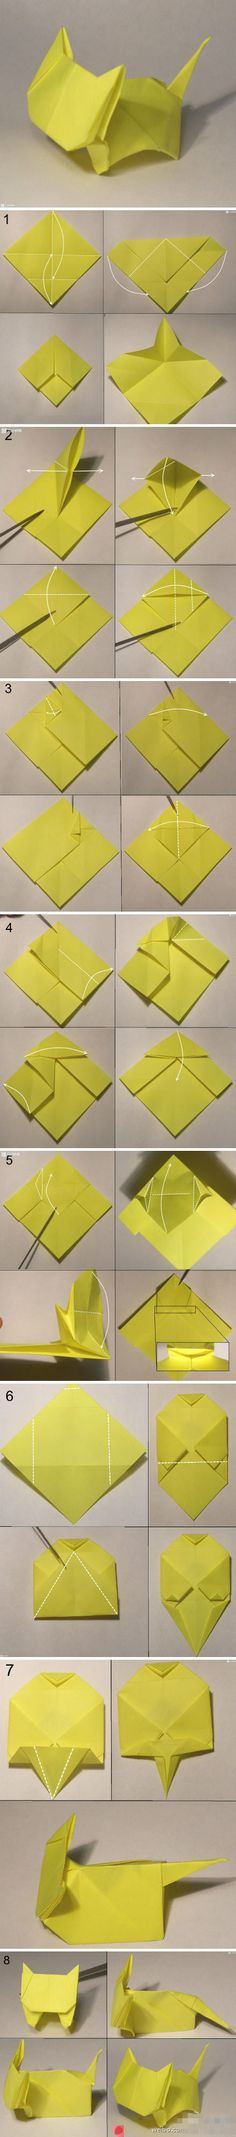 Origami Cat - to top presents?